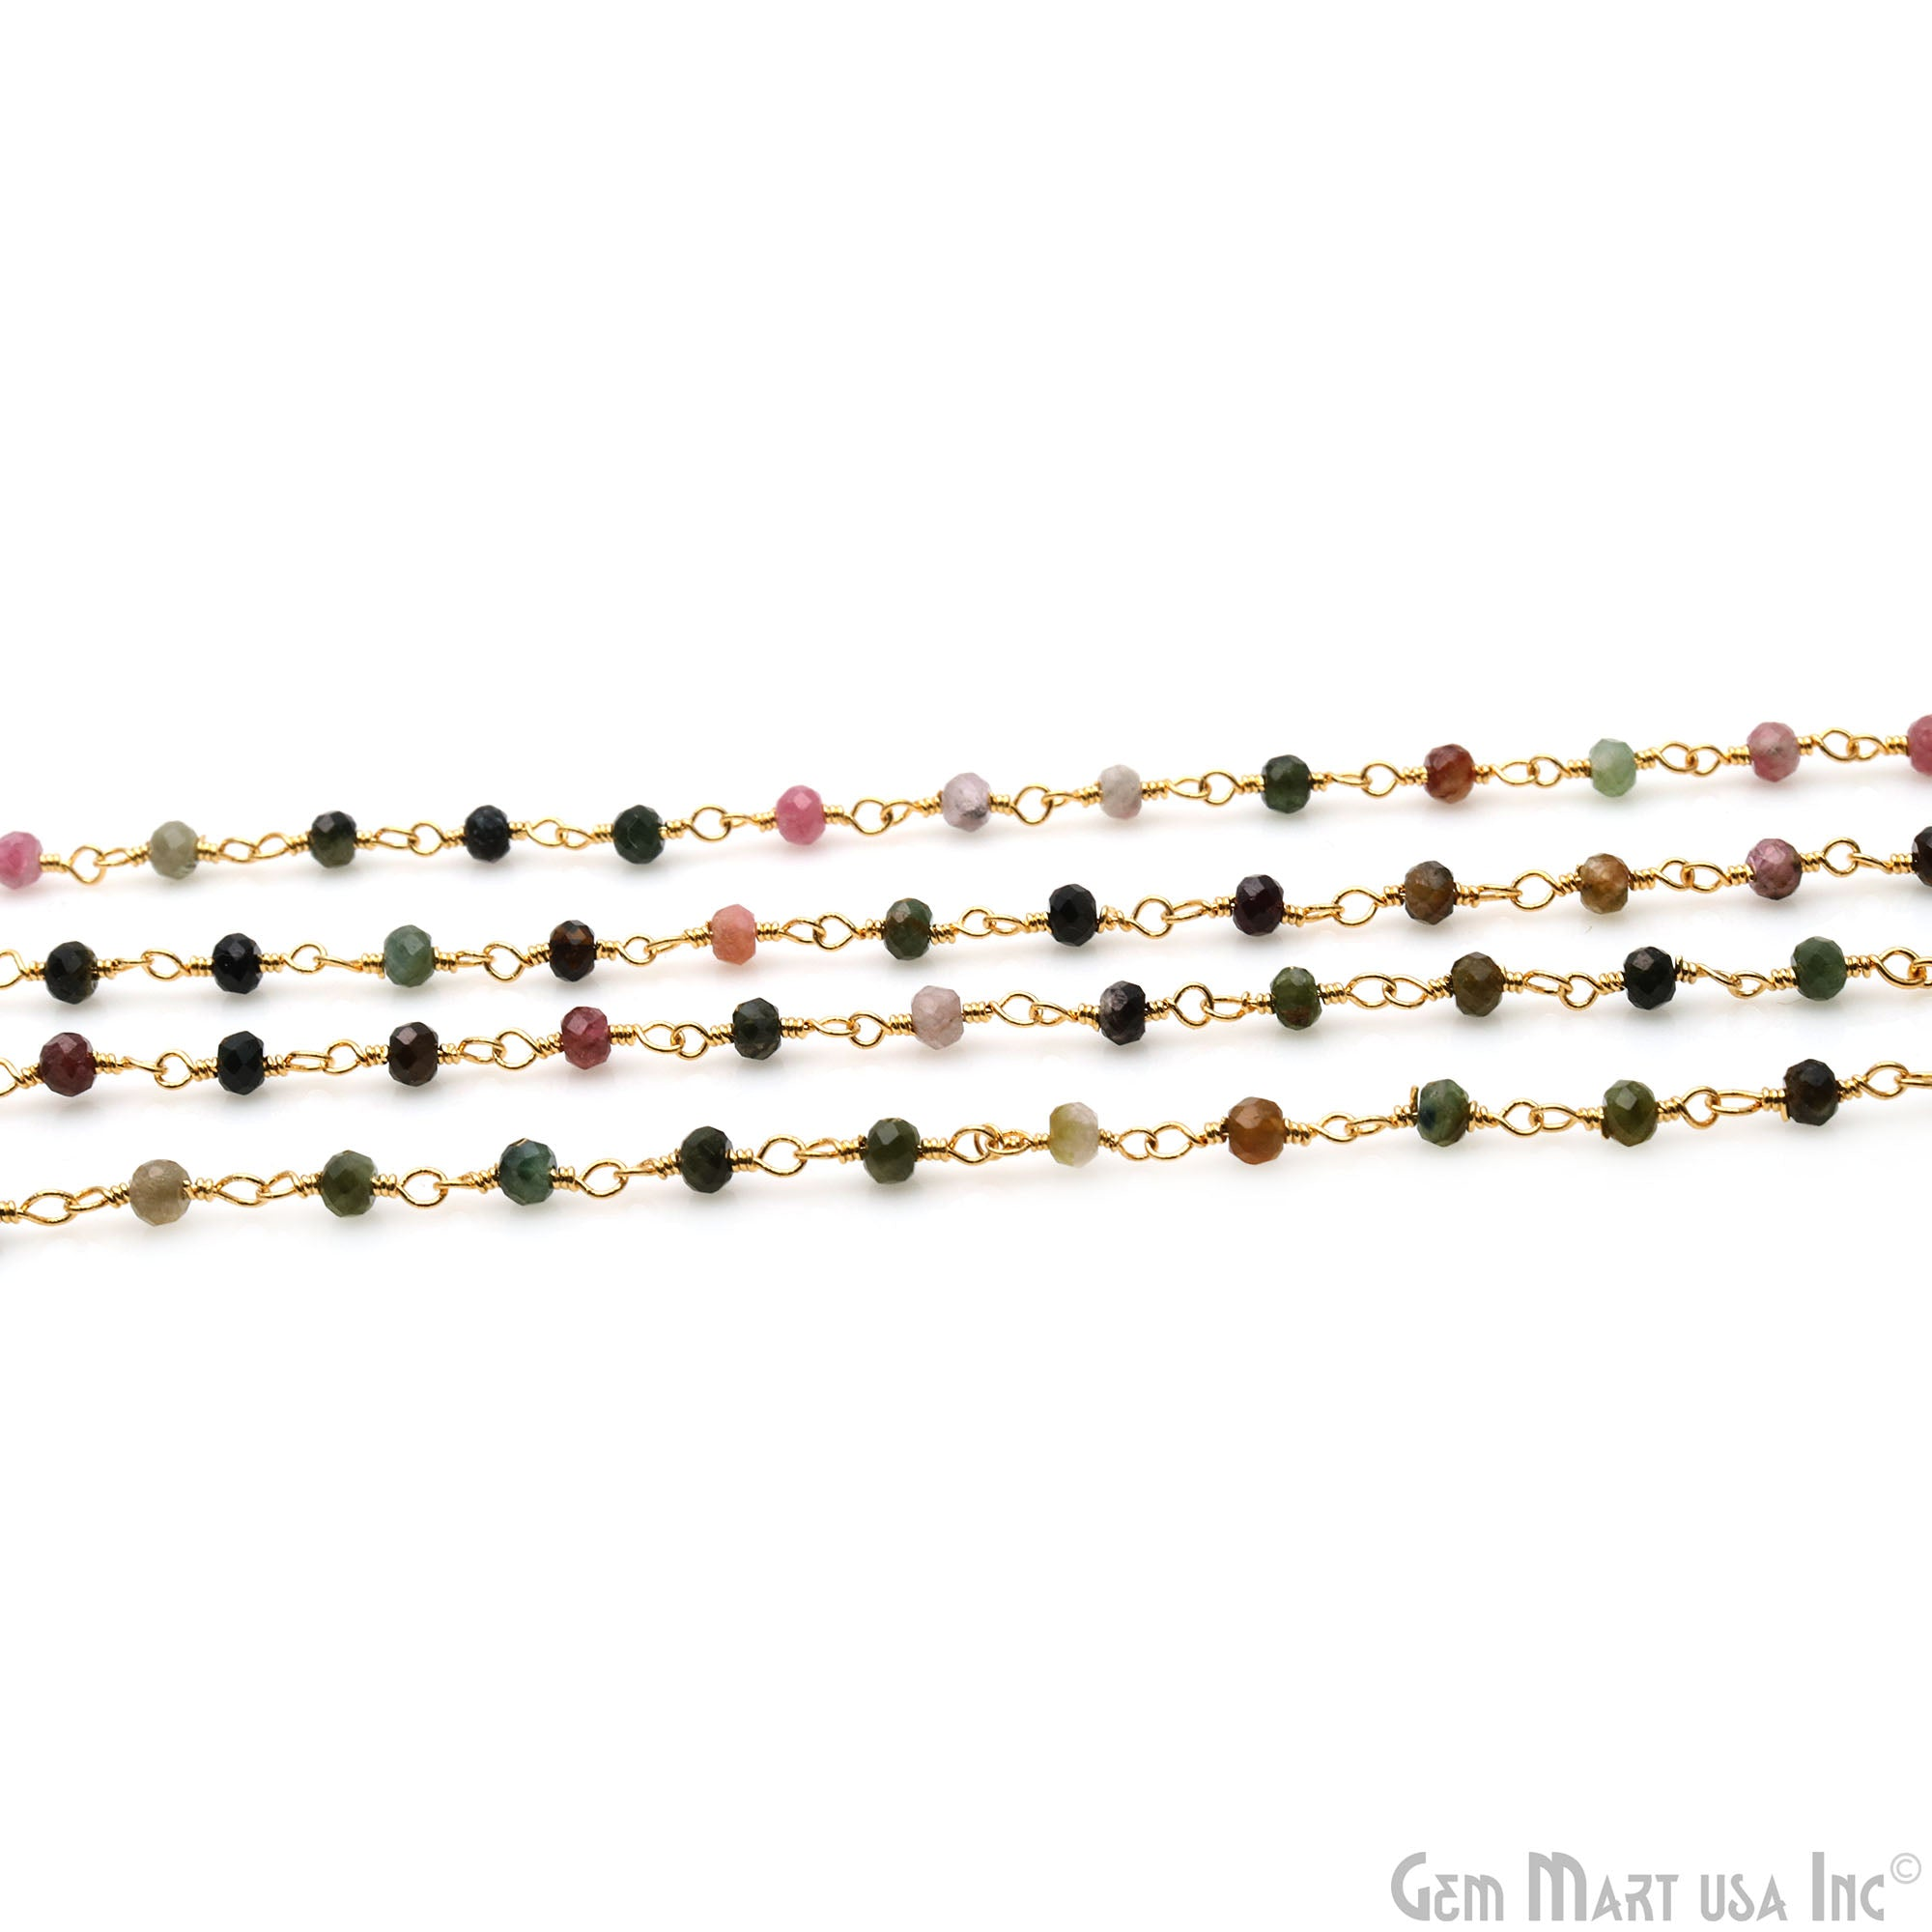 Tourmaline Faceted Beads Wire Wrapped 24k Gold Plated Wholesale Gemstone Rosary Chain 3 Feet Multi Tourmaline Rondelle Rosary Beaded Chain